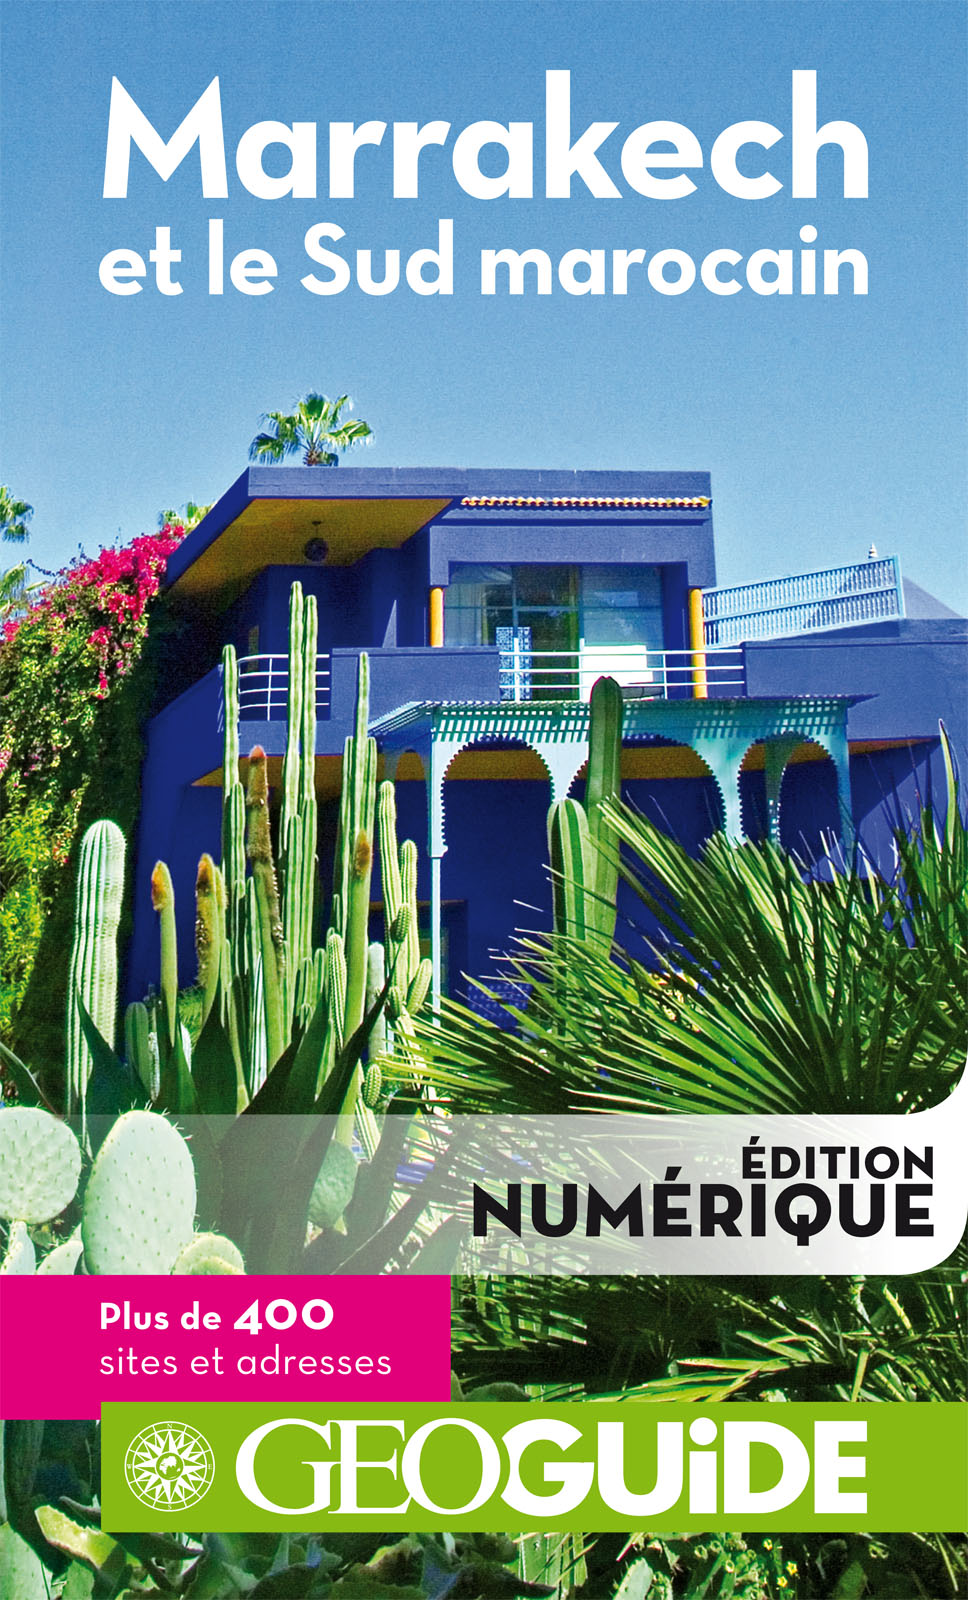 GEOguide Marrakech et le Sud marocain | Collectif Gallimard Loisirs,